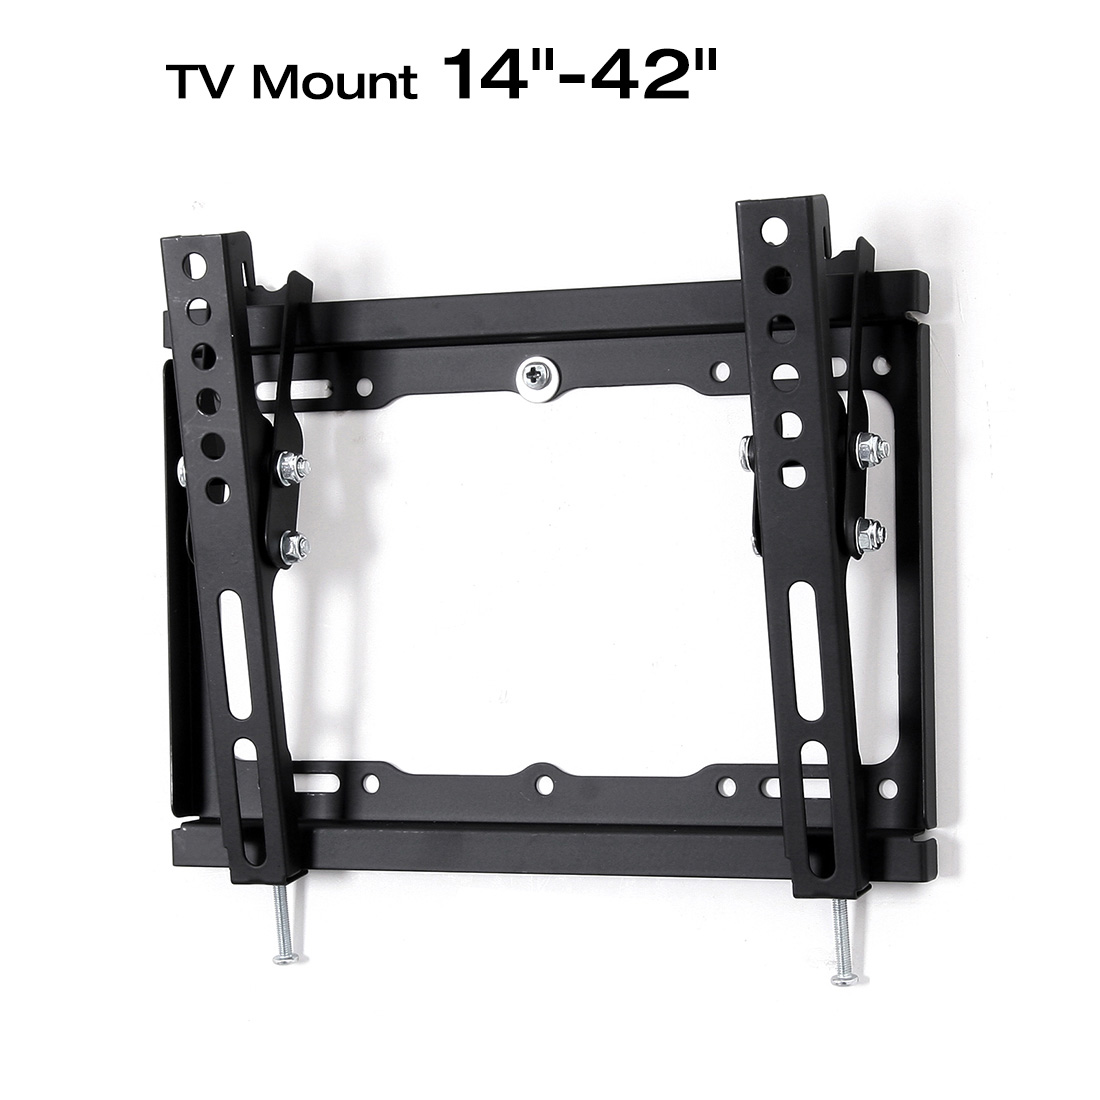 Loctek T1 Tilt TV Wall Mount Bracket 14″ – 42''. It fits for Samsung LG VIZIO Seiki Sony Toshiba Sharp Panasonic TCL TV etc.